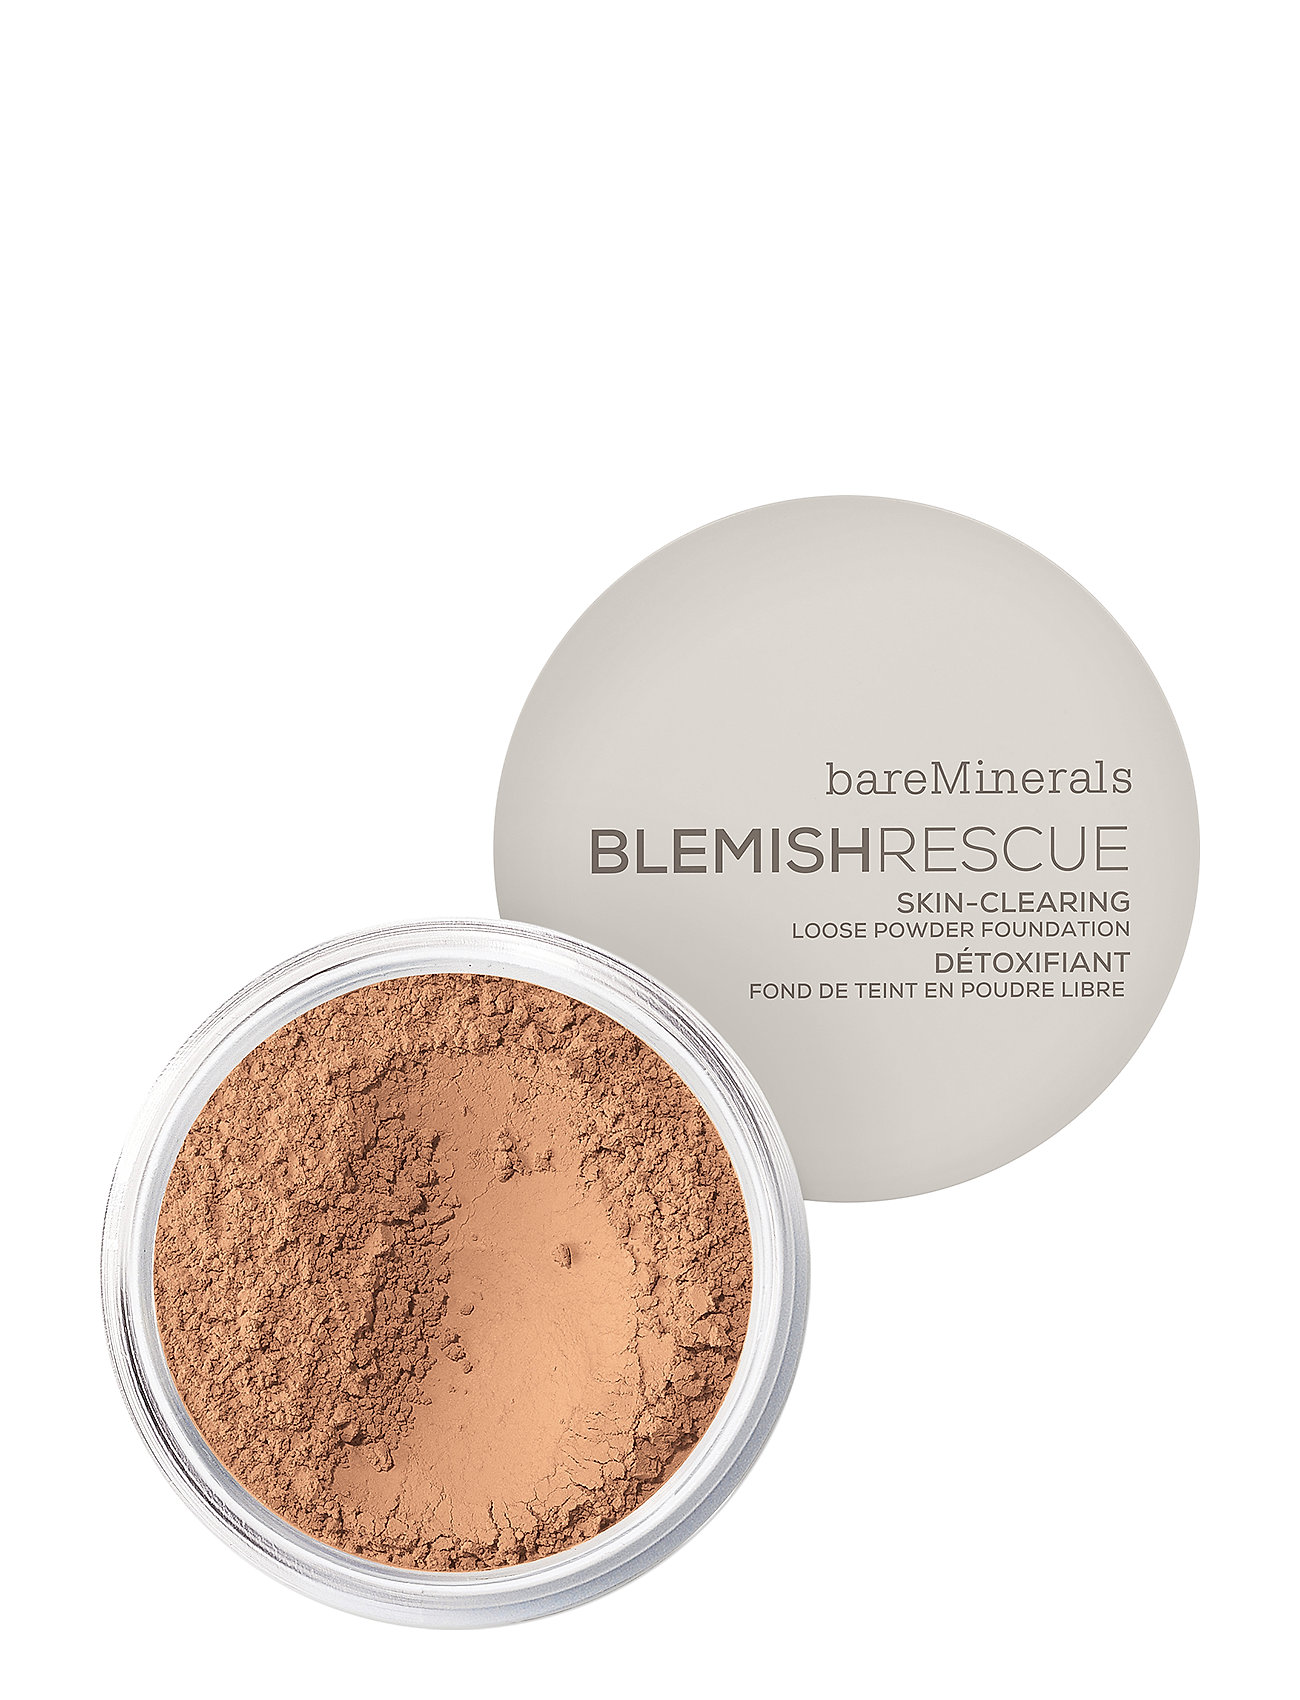 Image of Blemish Rescue Skin-Clearing Loose Powder Foundation Foundation Makeup BareMinerals (3330696185)